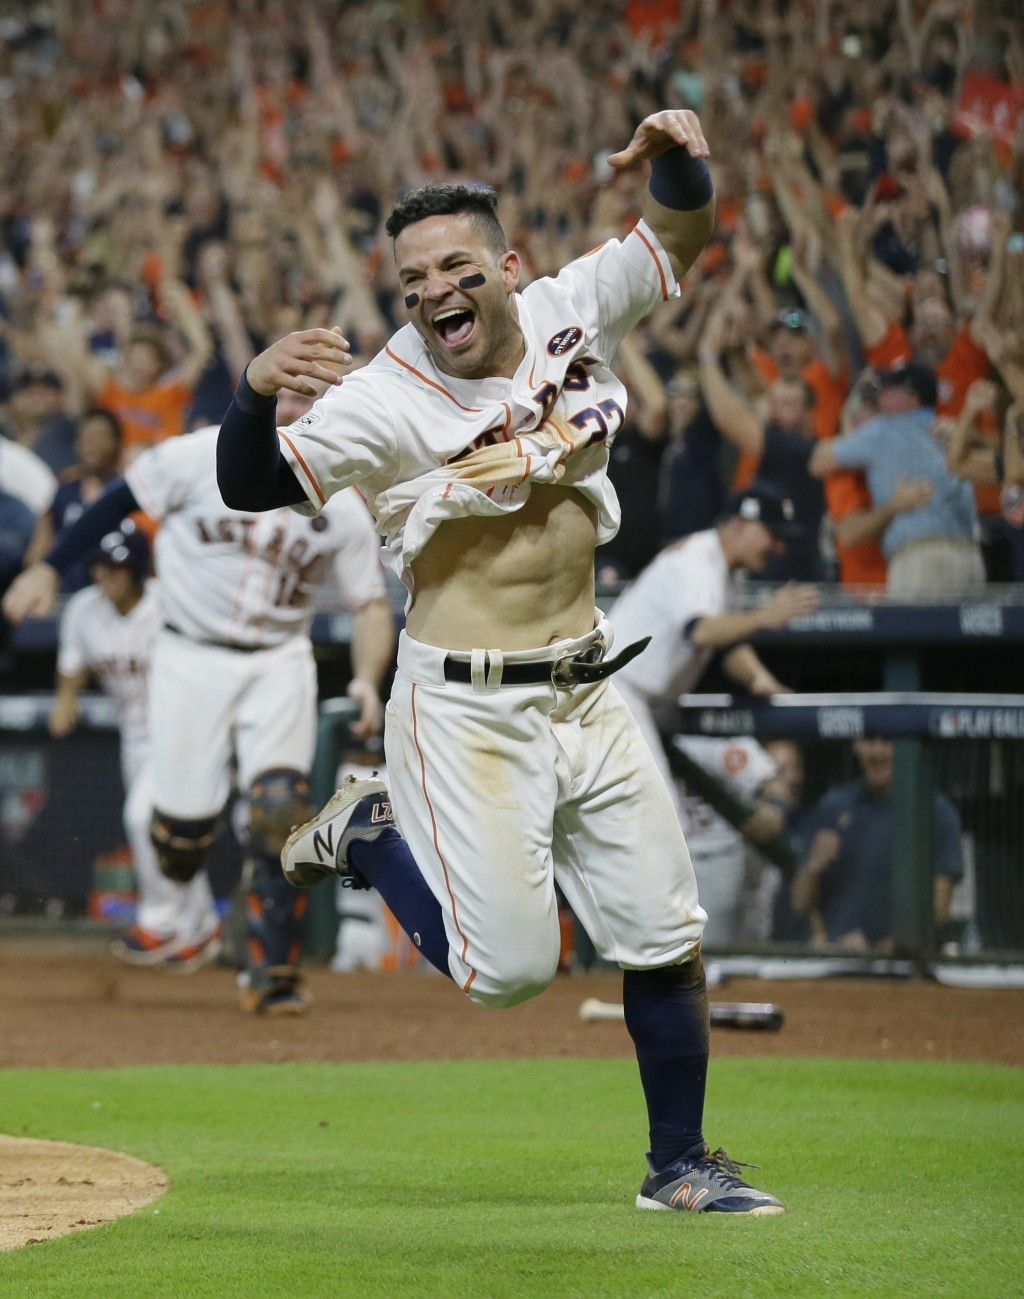 FILE - In this Oct. 14, 2017, file photo, Houston Astros' Jose Altuve reacts after scoring the game-winning run during the ninth inning of Game 2 of b...